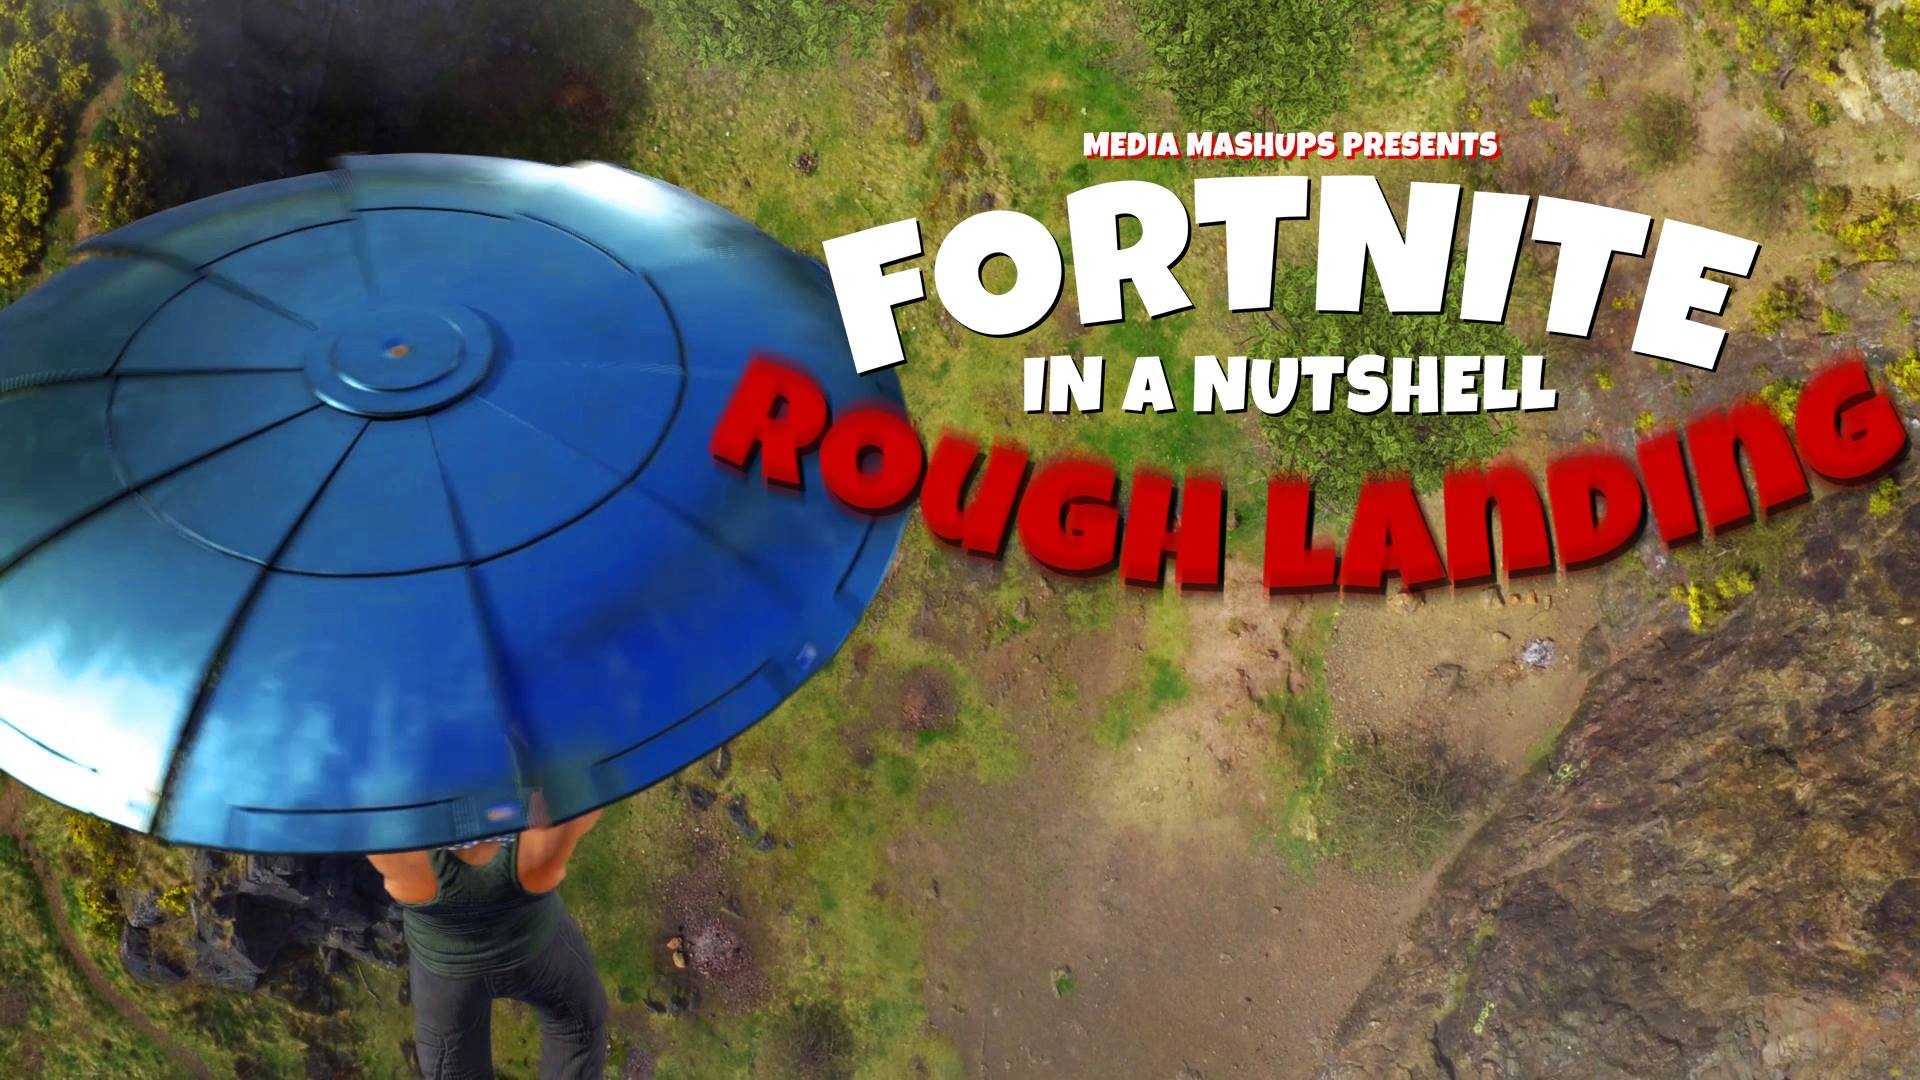 FORTNITE IN A NUTSHELL – ROUGH LANDING